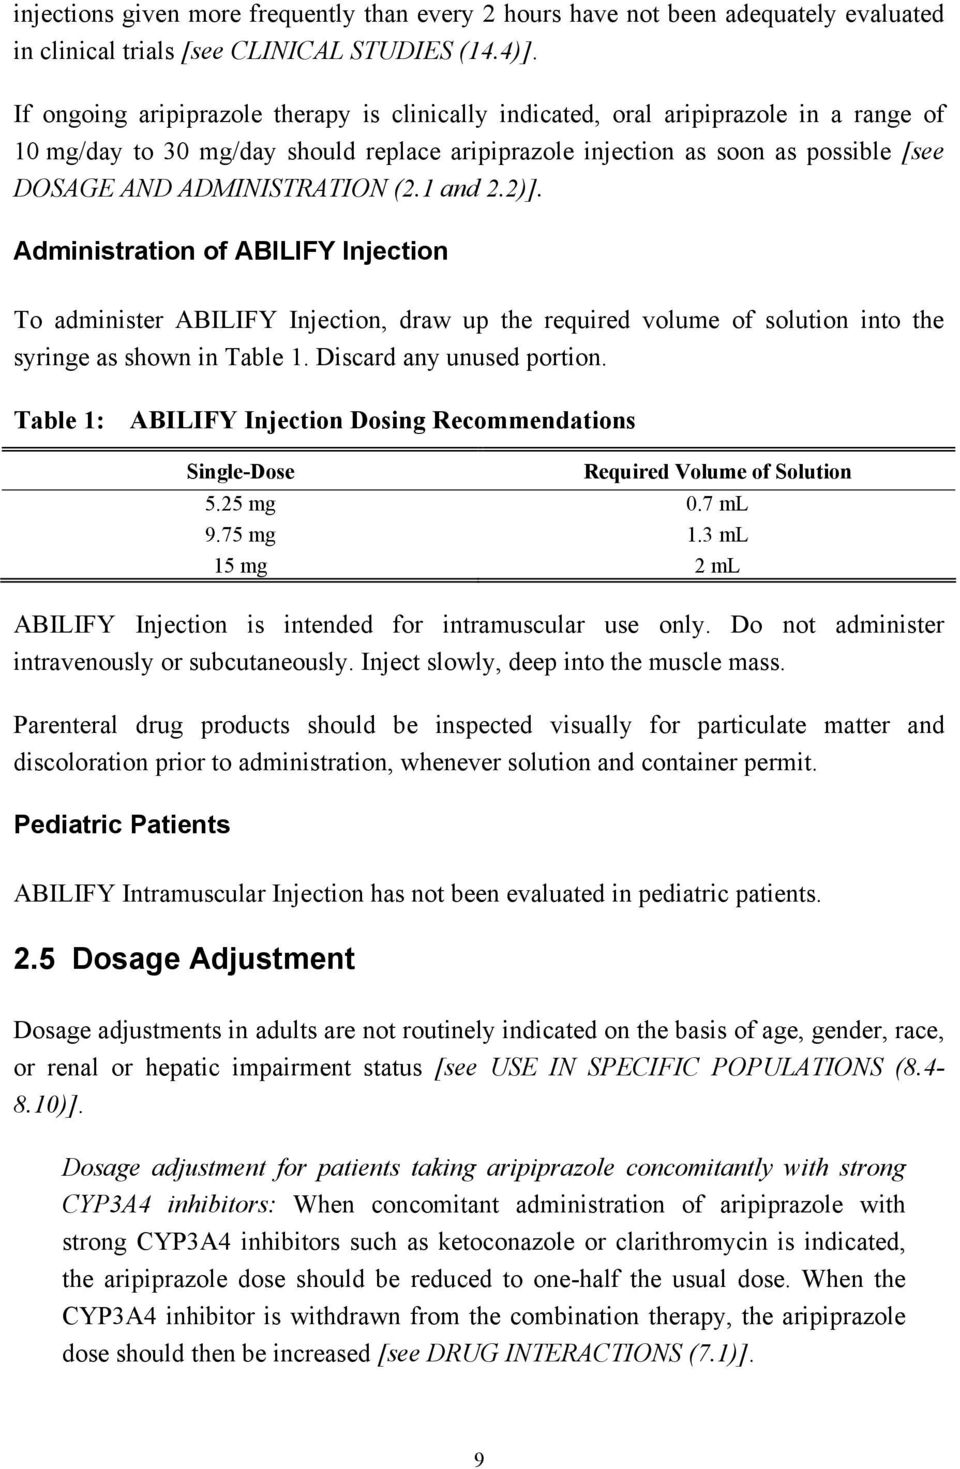 ADMINISTRATION (2.1 and 2.2)]. Administration of ABILIFY Injection To administer ABILIFY Injection, draw up the required volume of solution into the syringe as shown in Table 1.